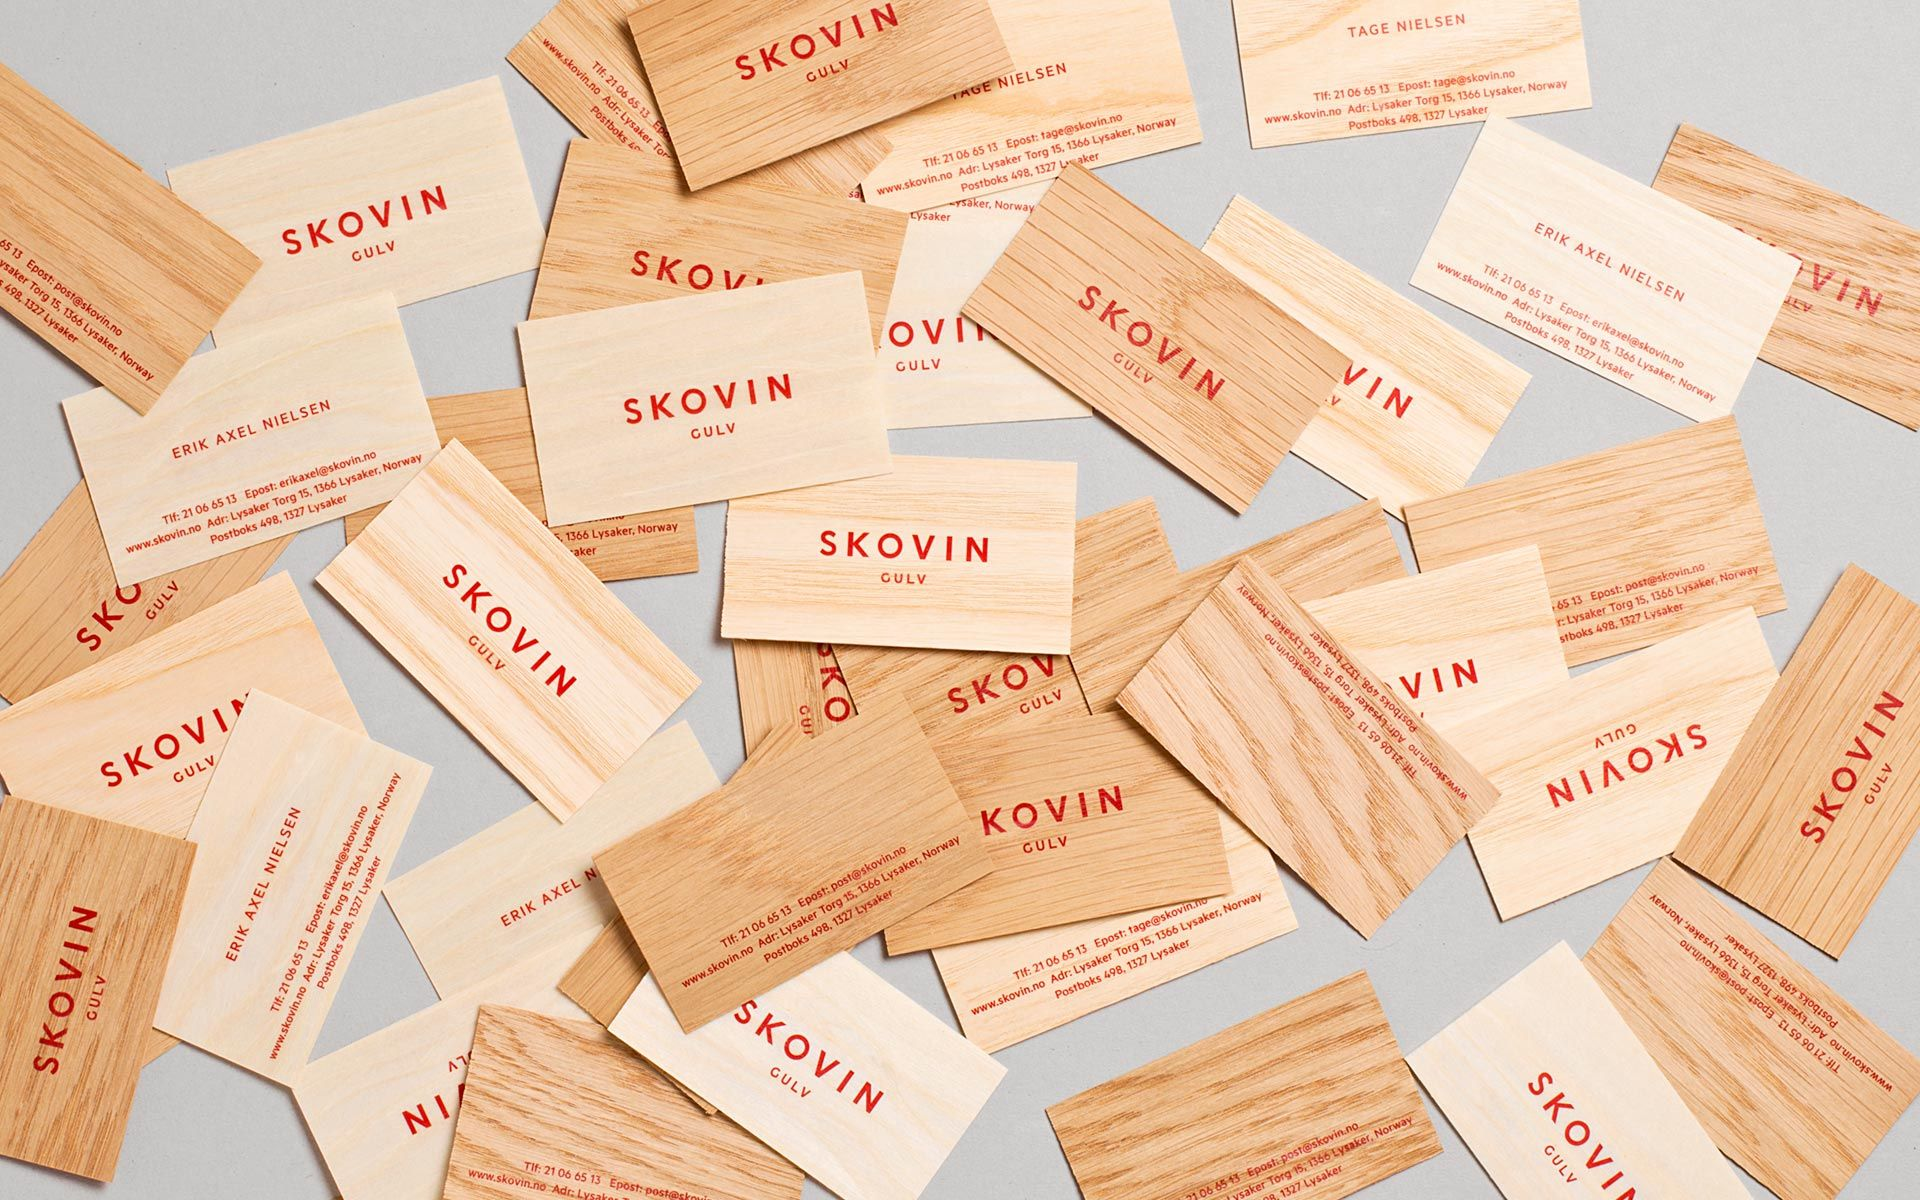 Skovin gulv wood veneer business cards designed by heydays love the skovin gulv wood veneer business cards designed by heydays love the wood so different from the usual reheart Images